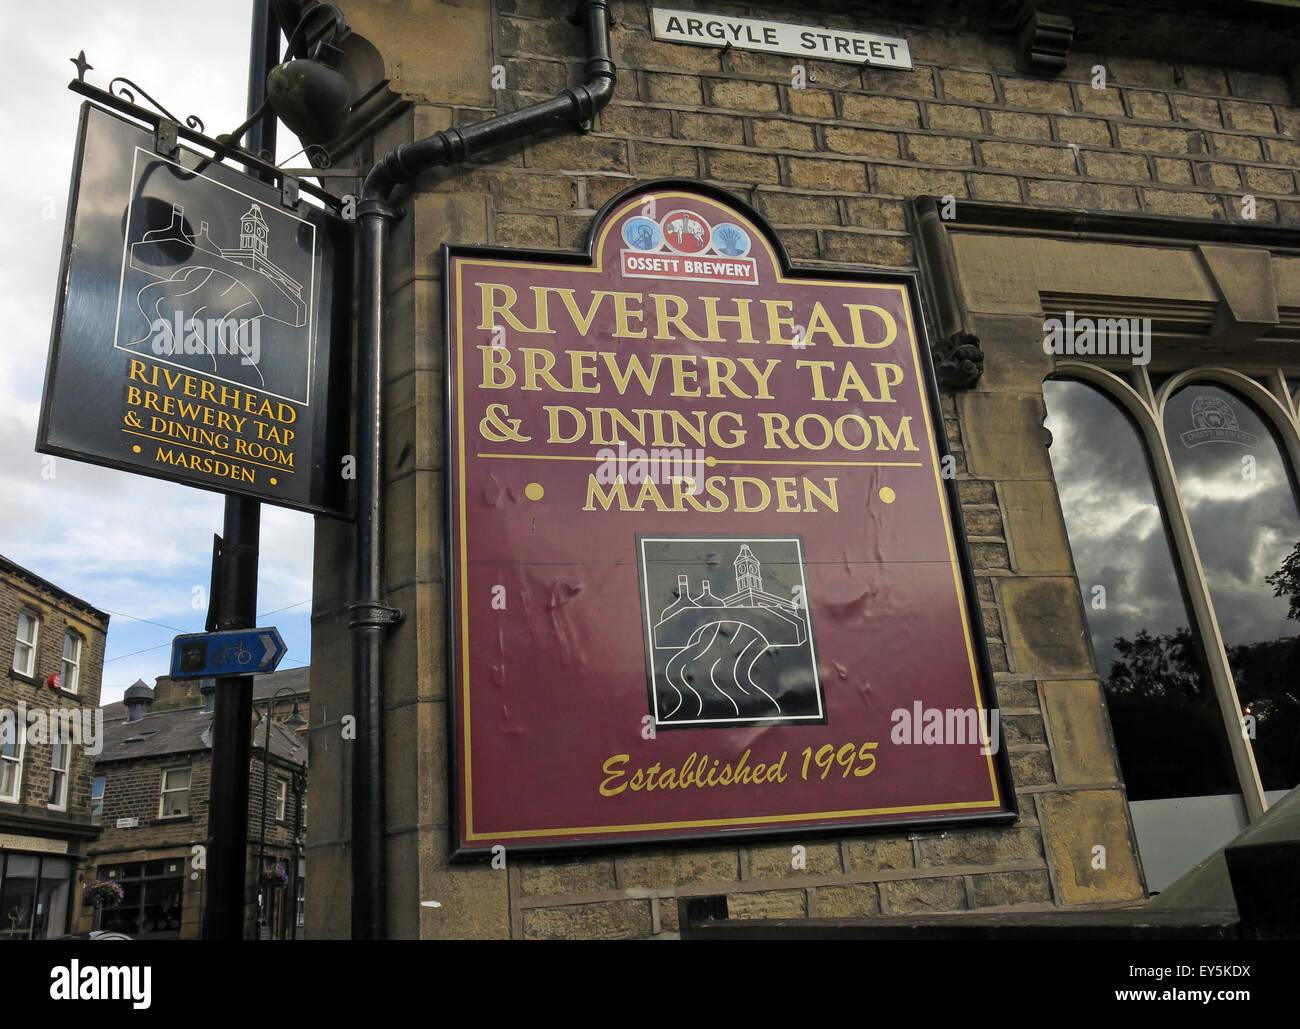 Riverhead Brewery Pub Marsden, West Yorkshire, England, Uk on the CAMRA aletrain route - Stock Image